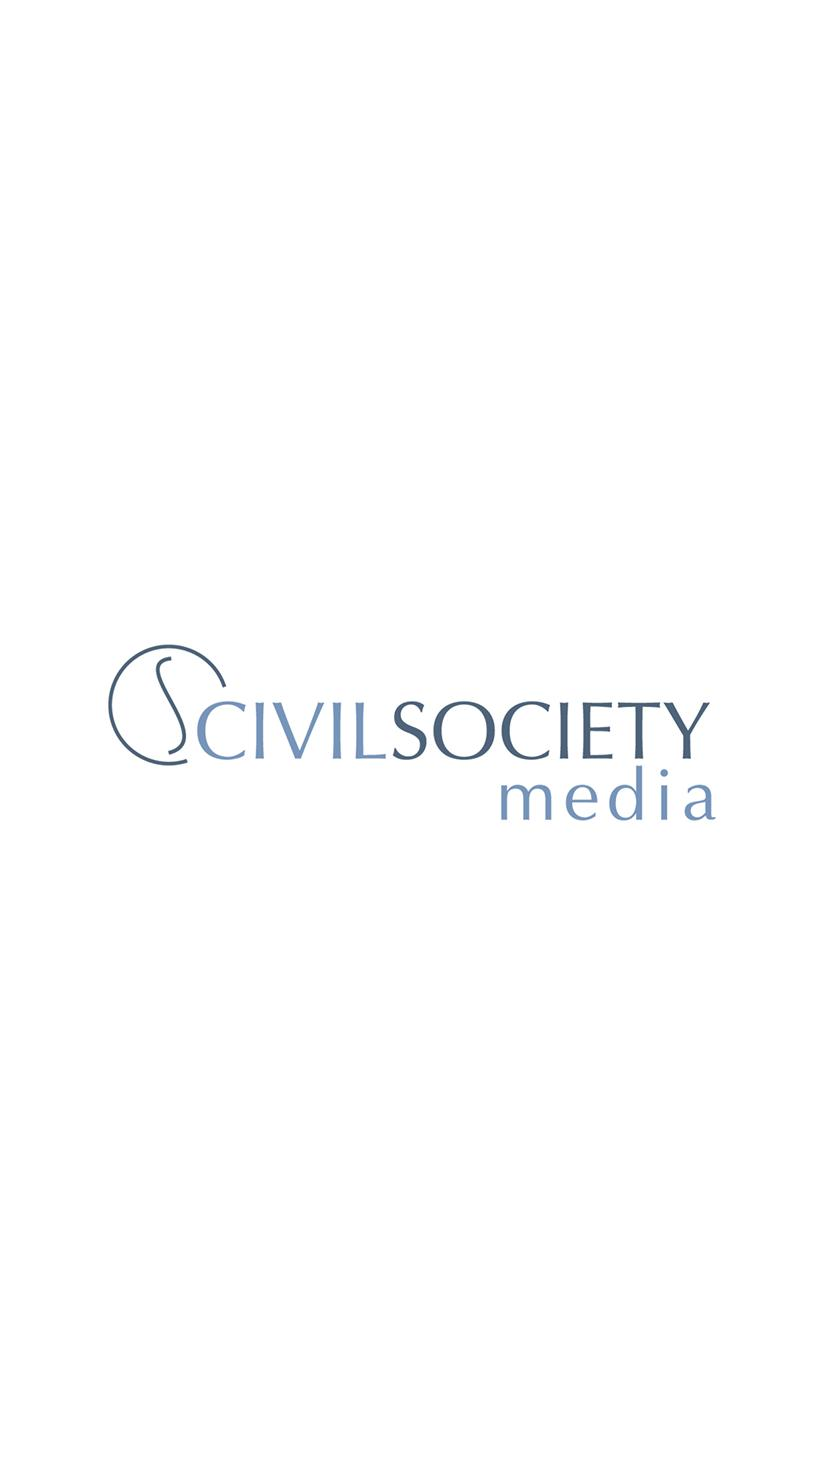 Civil Society Media Events screenshot 1